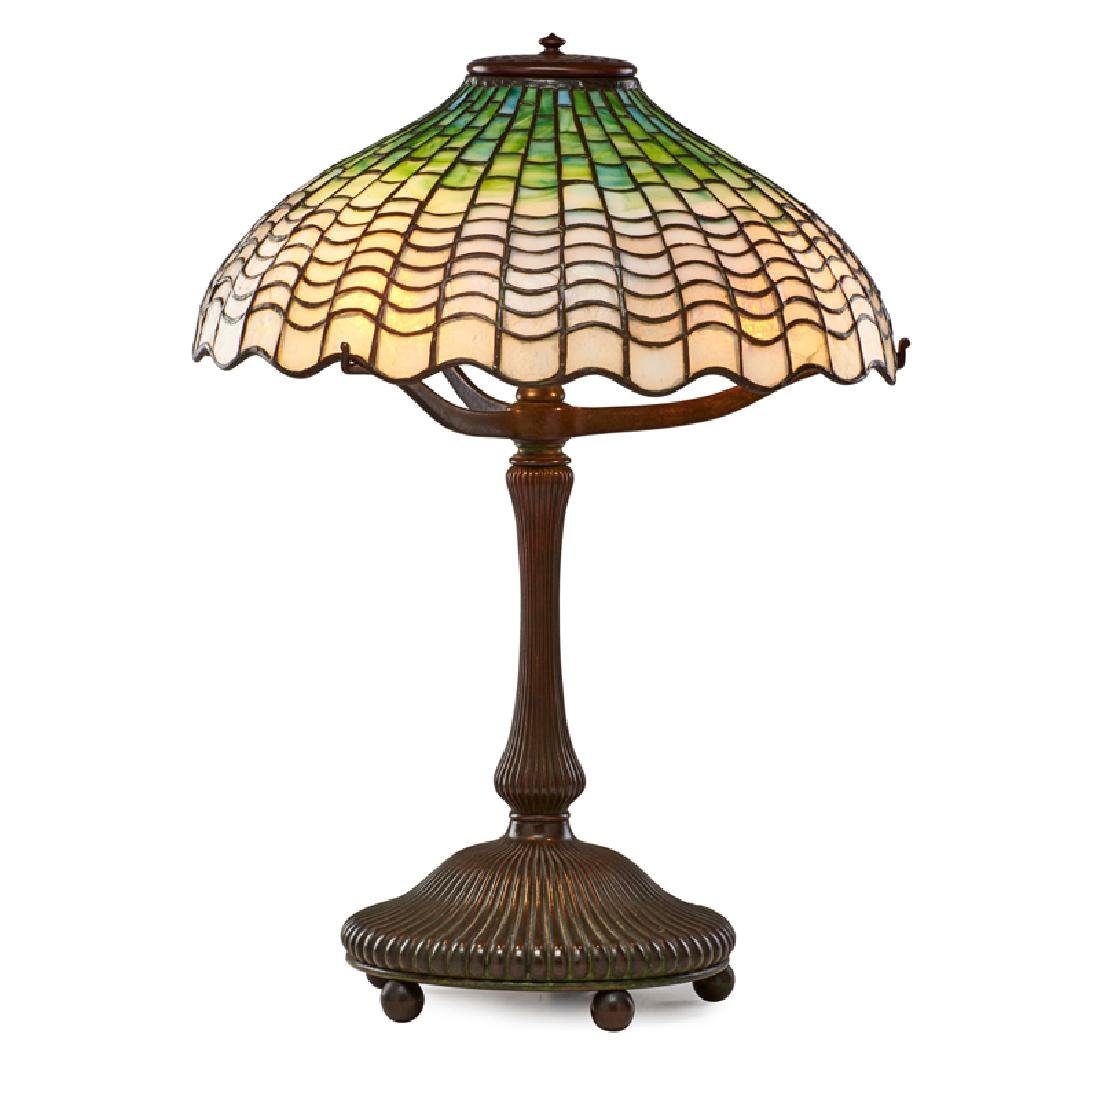 TIFFANY STUDIOS Shell table lamp